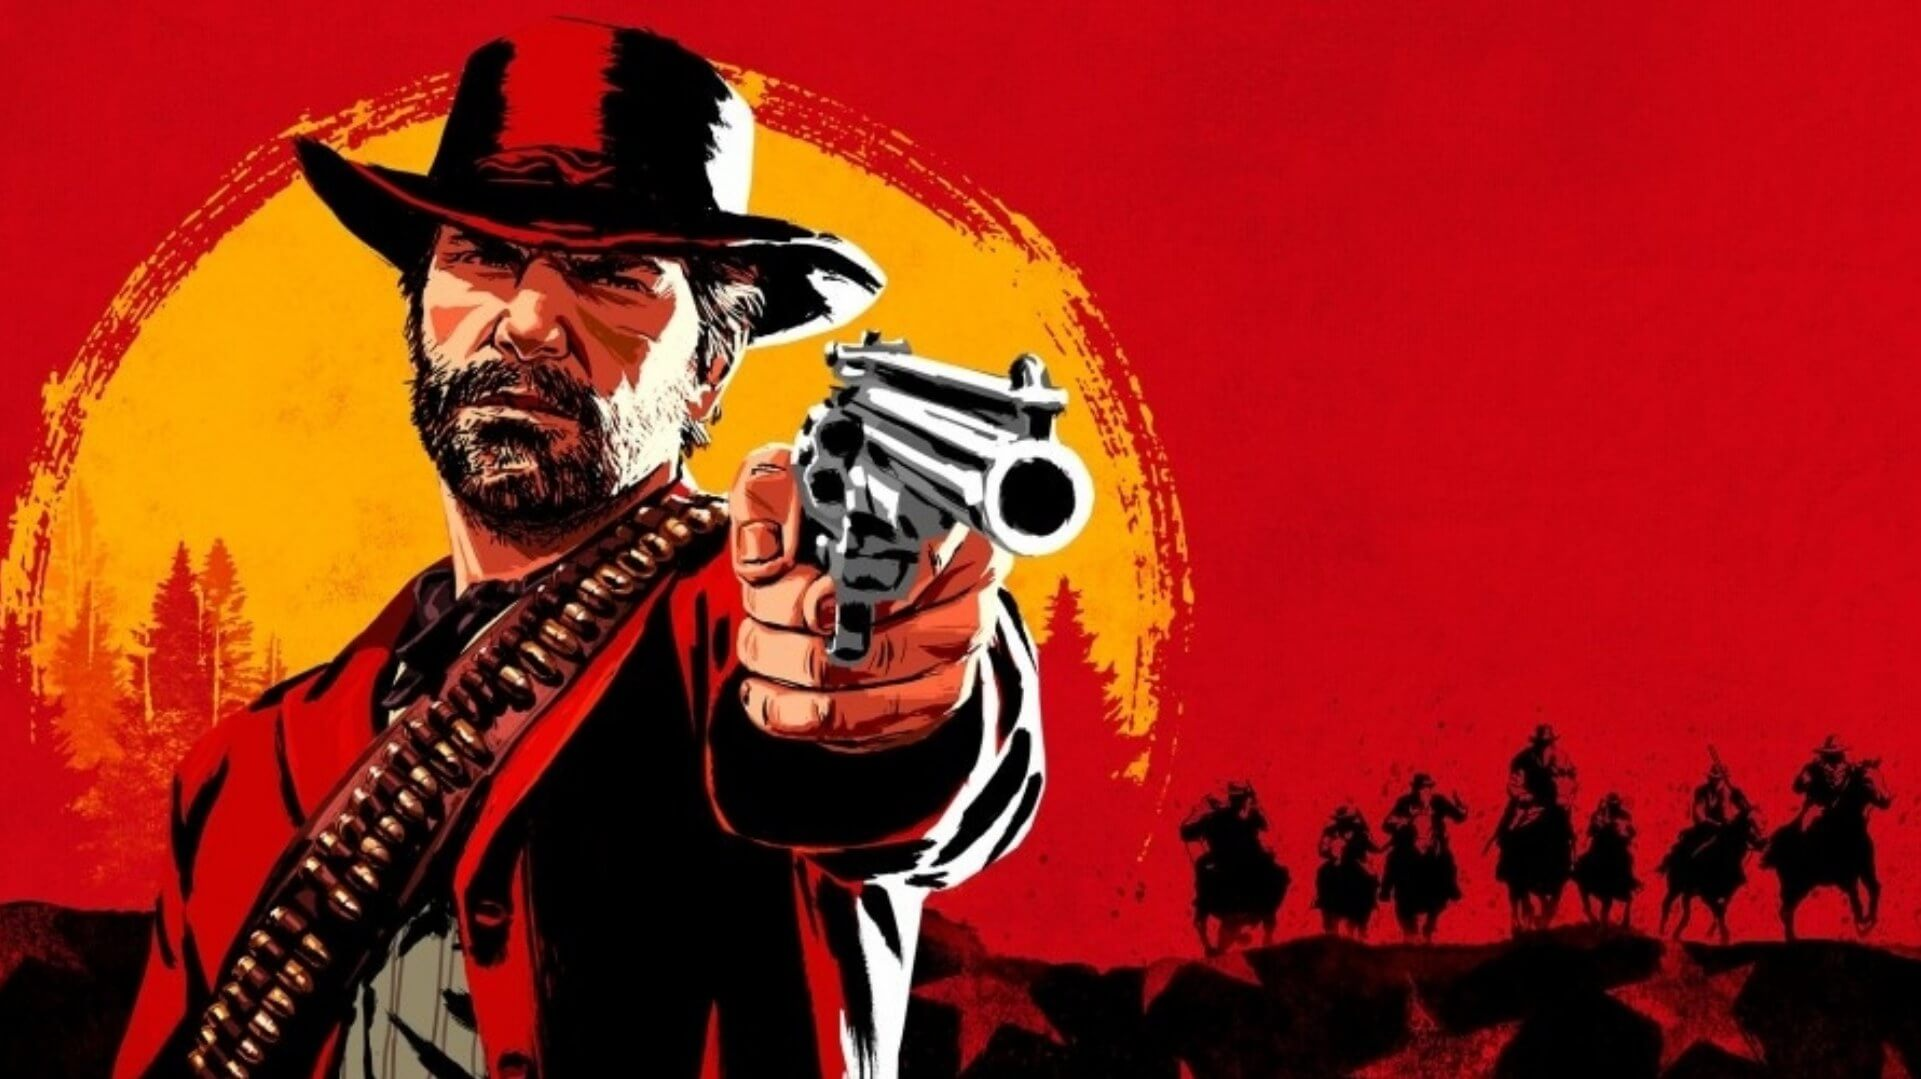 Red Dead Redemption 2 comes to PC on November 5